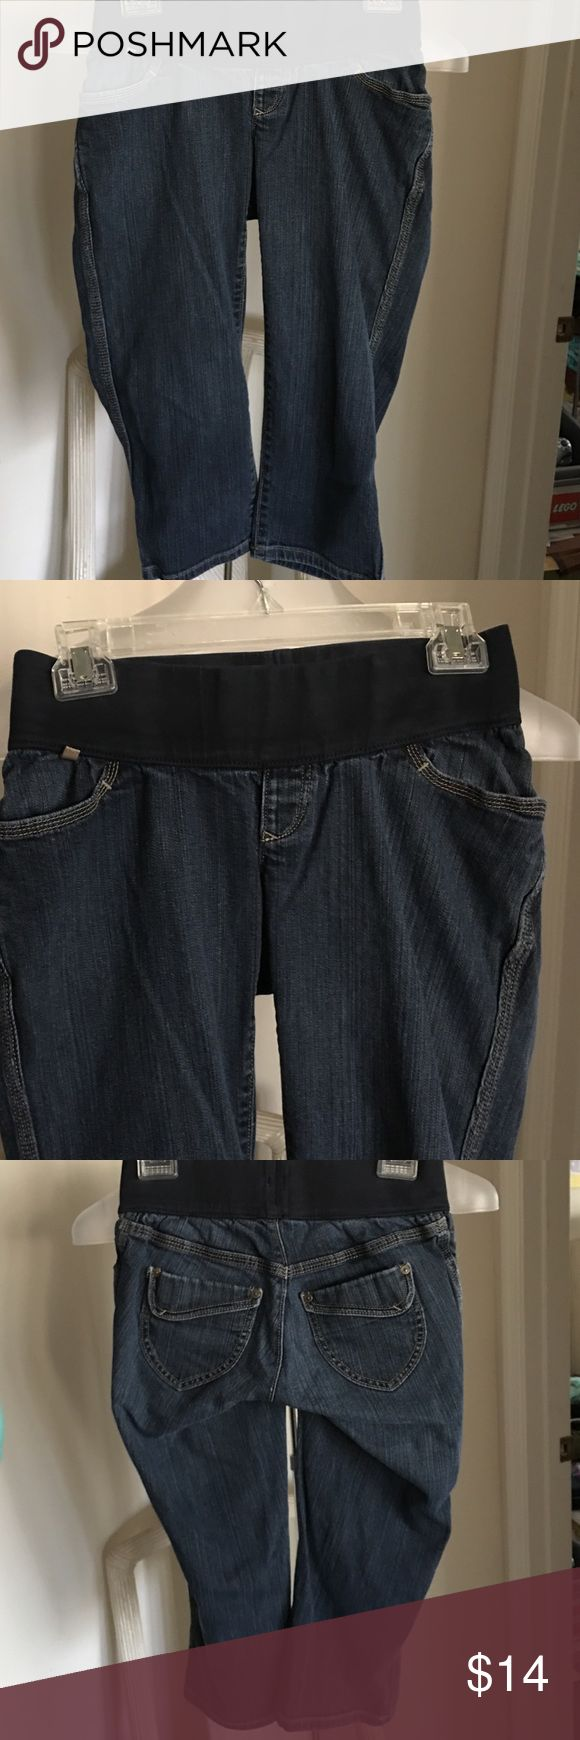 Old navy maternity low rise waist capri jeans XS Old navy maternity low rise waist capri jeans XS. In good condition with really cute back pockets Old Navy Jeans